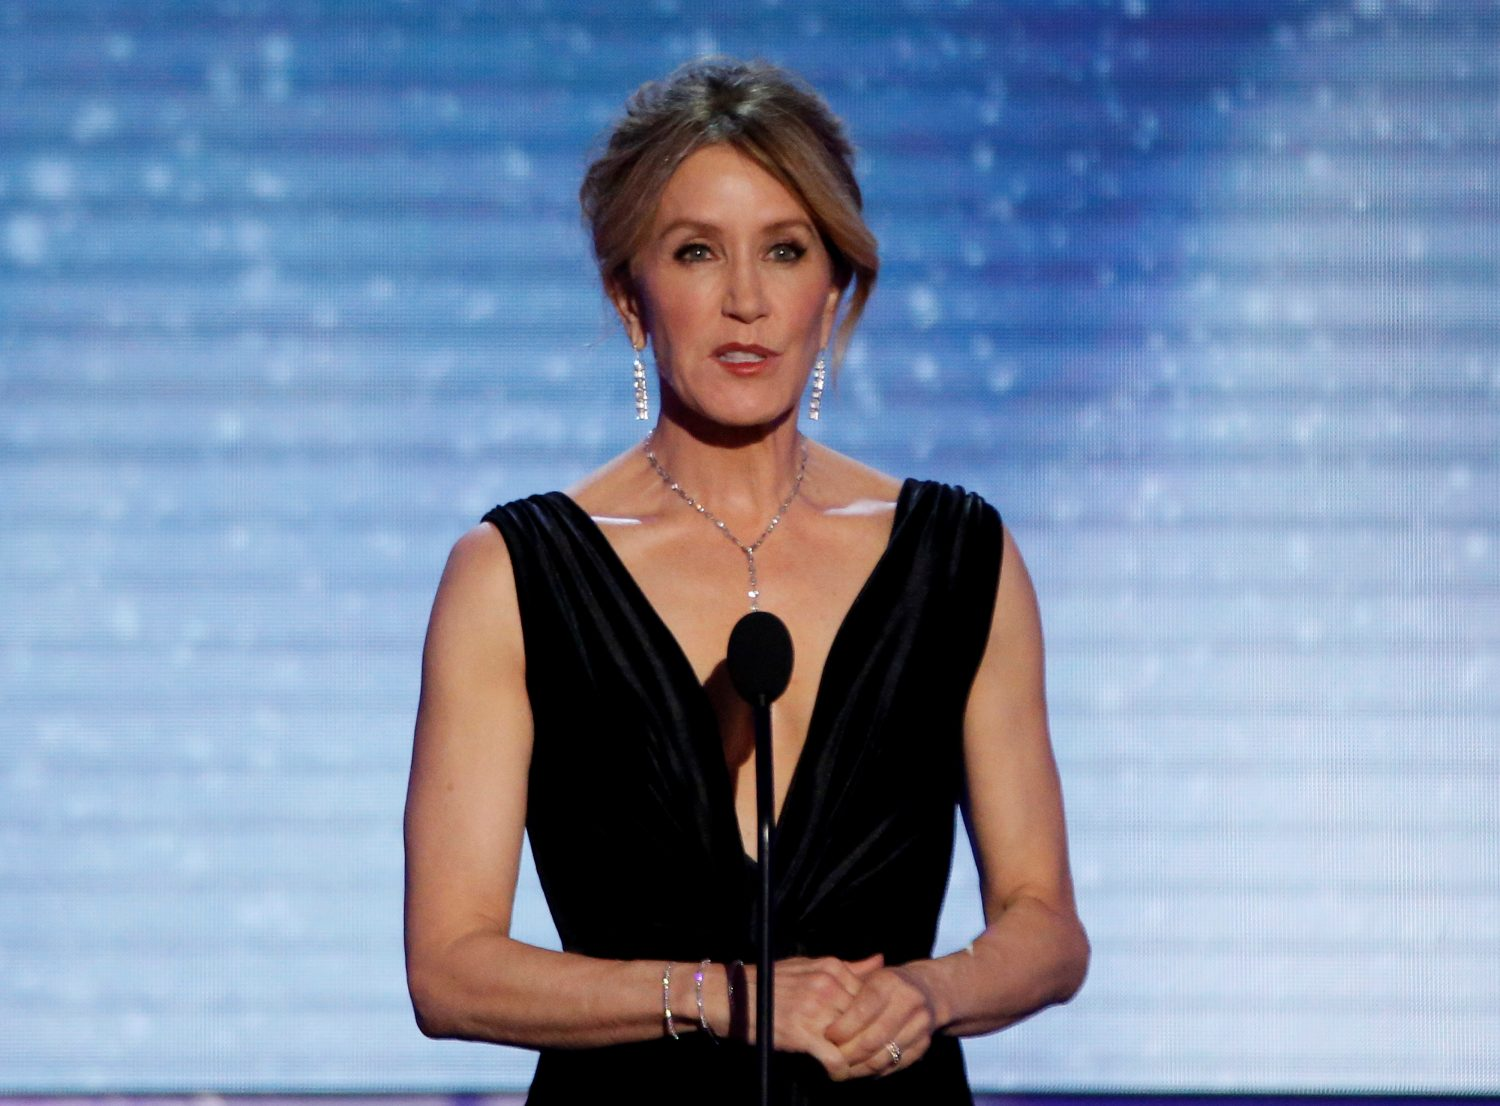 FILE PHOTO: 24th Screen Actors Guild Awards – Show – Los Angeles, California, U.S., 21/01/2018 – Actress Felicity Huffman speaks on stage. REUTERS/Mario Anzuoni/File Photo